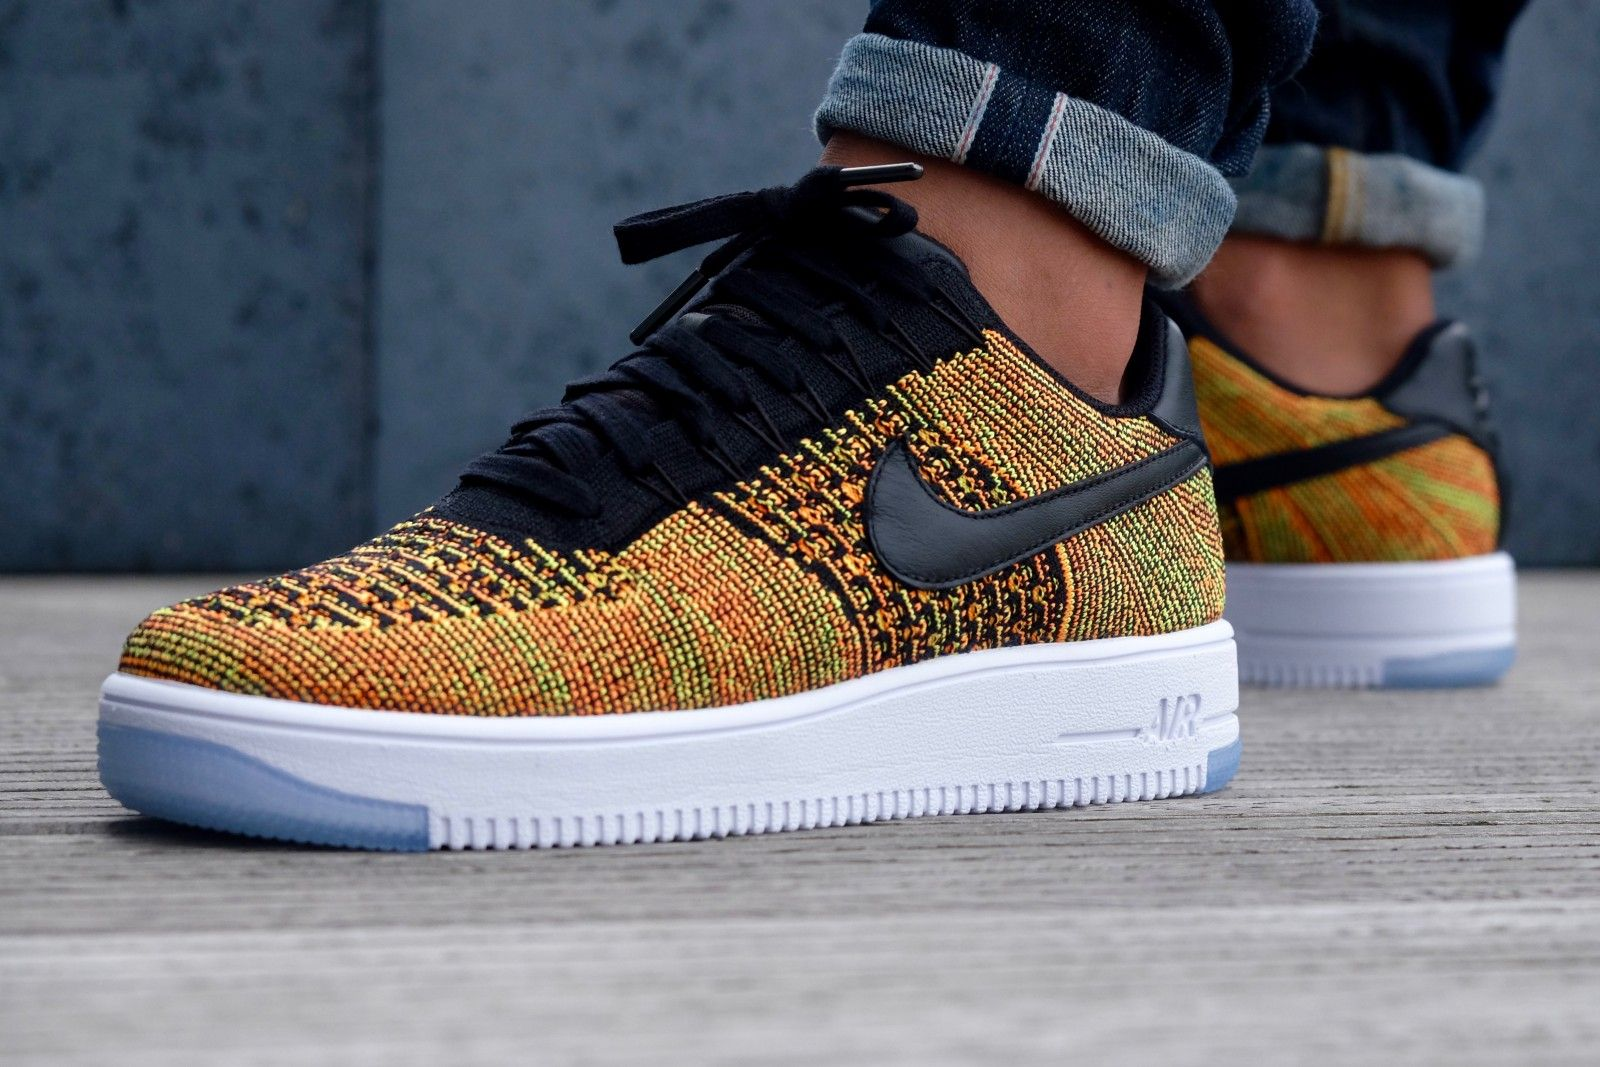 quality design d013f bd956 Nike Air Force 1 Ultra Flyknit Low Volt  Black Orange - 817419-700